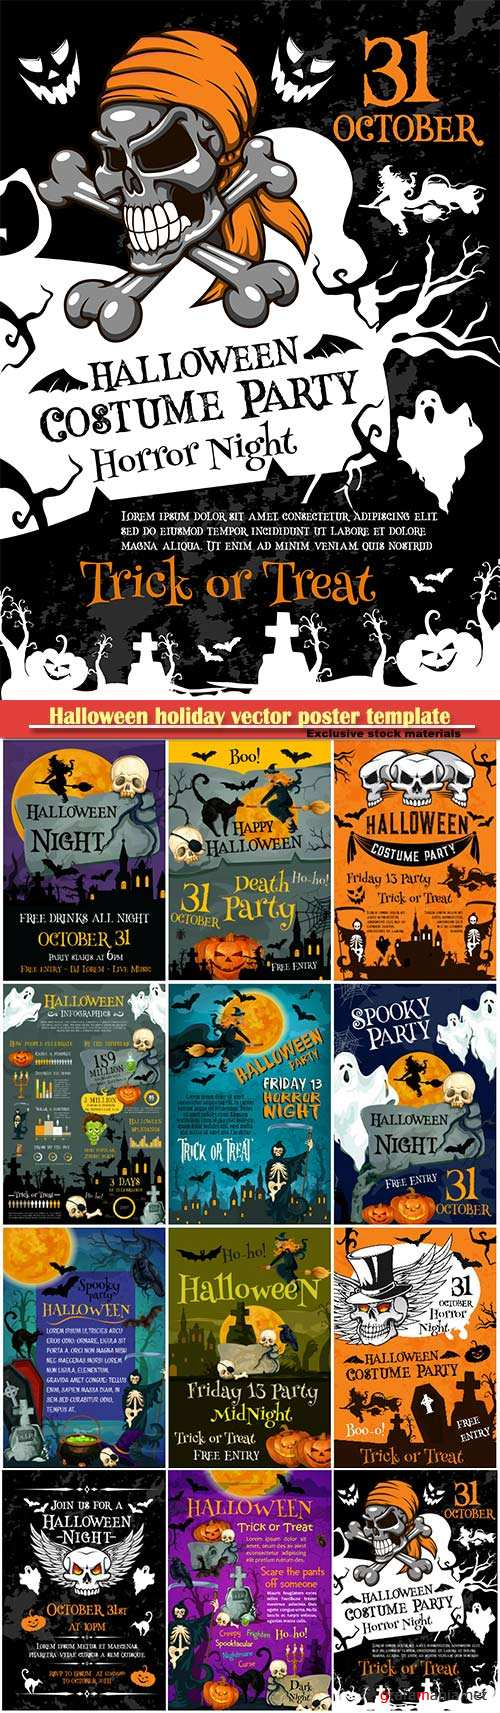 Halloween holiday vector poster template, scary pumpkin lantern and bat, spooky skeleton skull and death scythe, black cat and spider web on cemetery grave banner for october holiday design